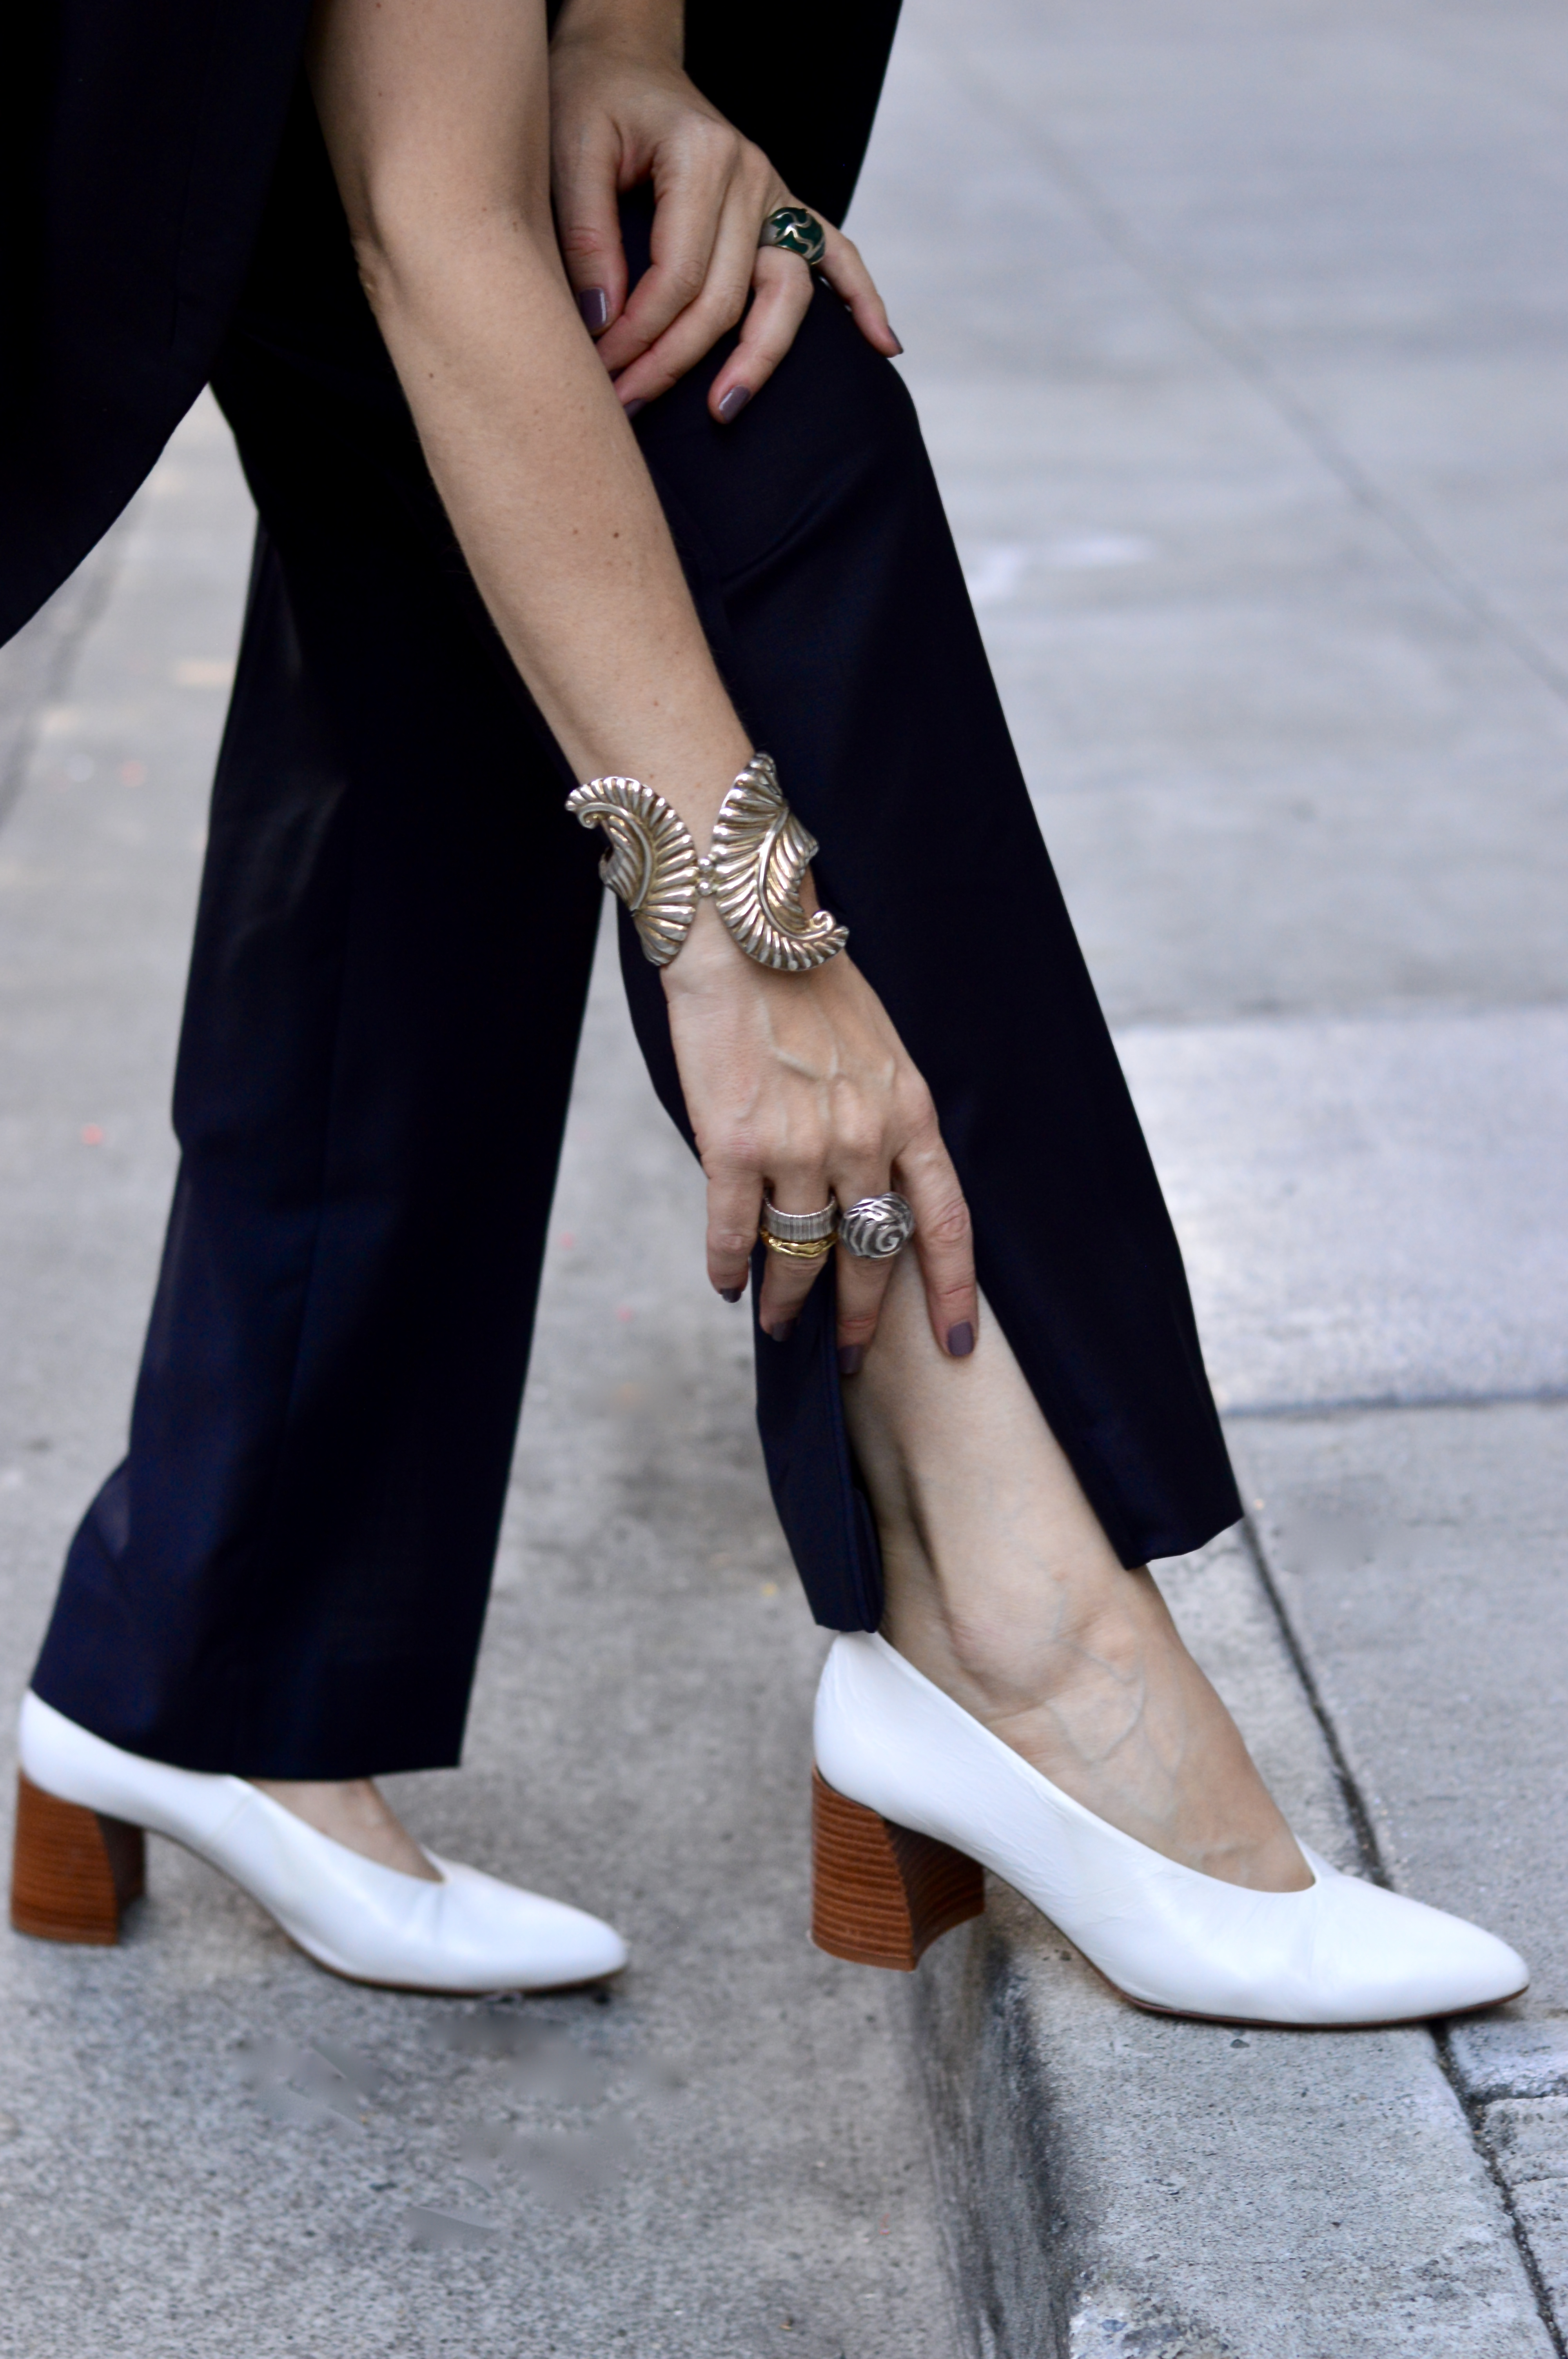 Slit pant suit and statement jewelry